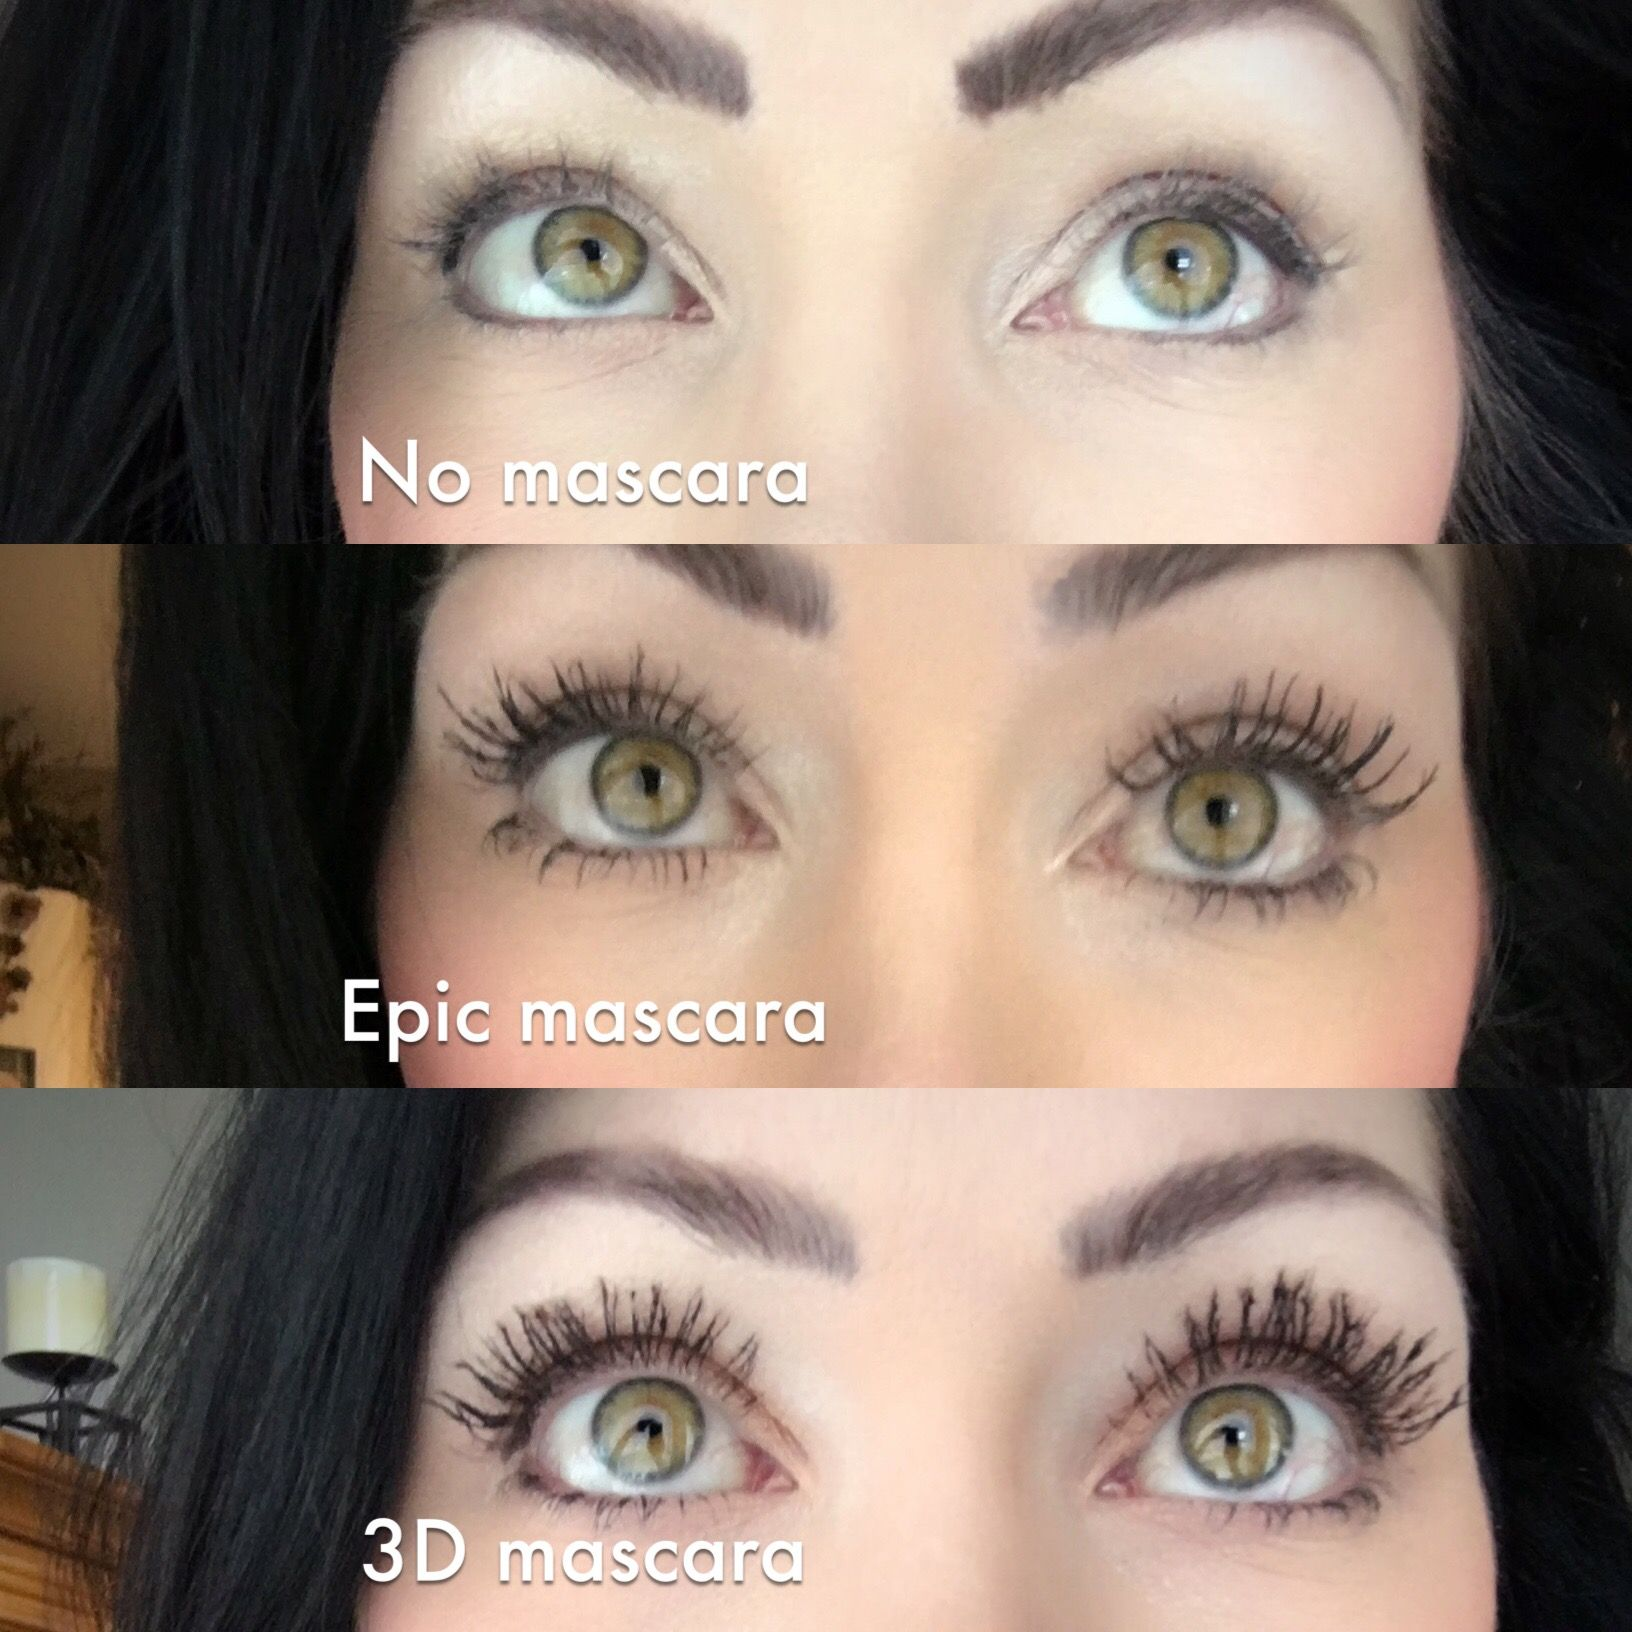 ff87698e1a8 Younique Epic Mascara and Younique 3D mascara | Younique in 2019 ...